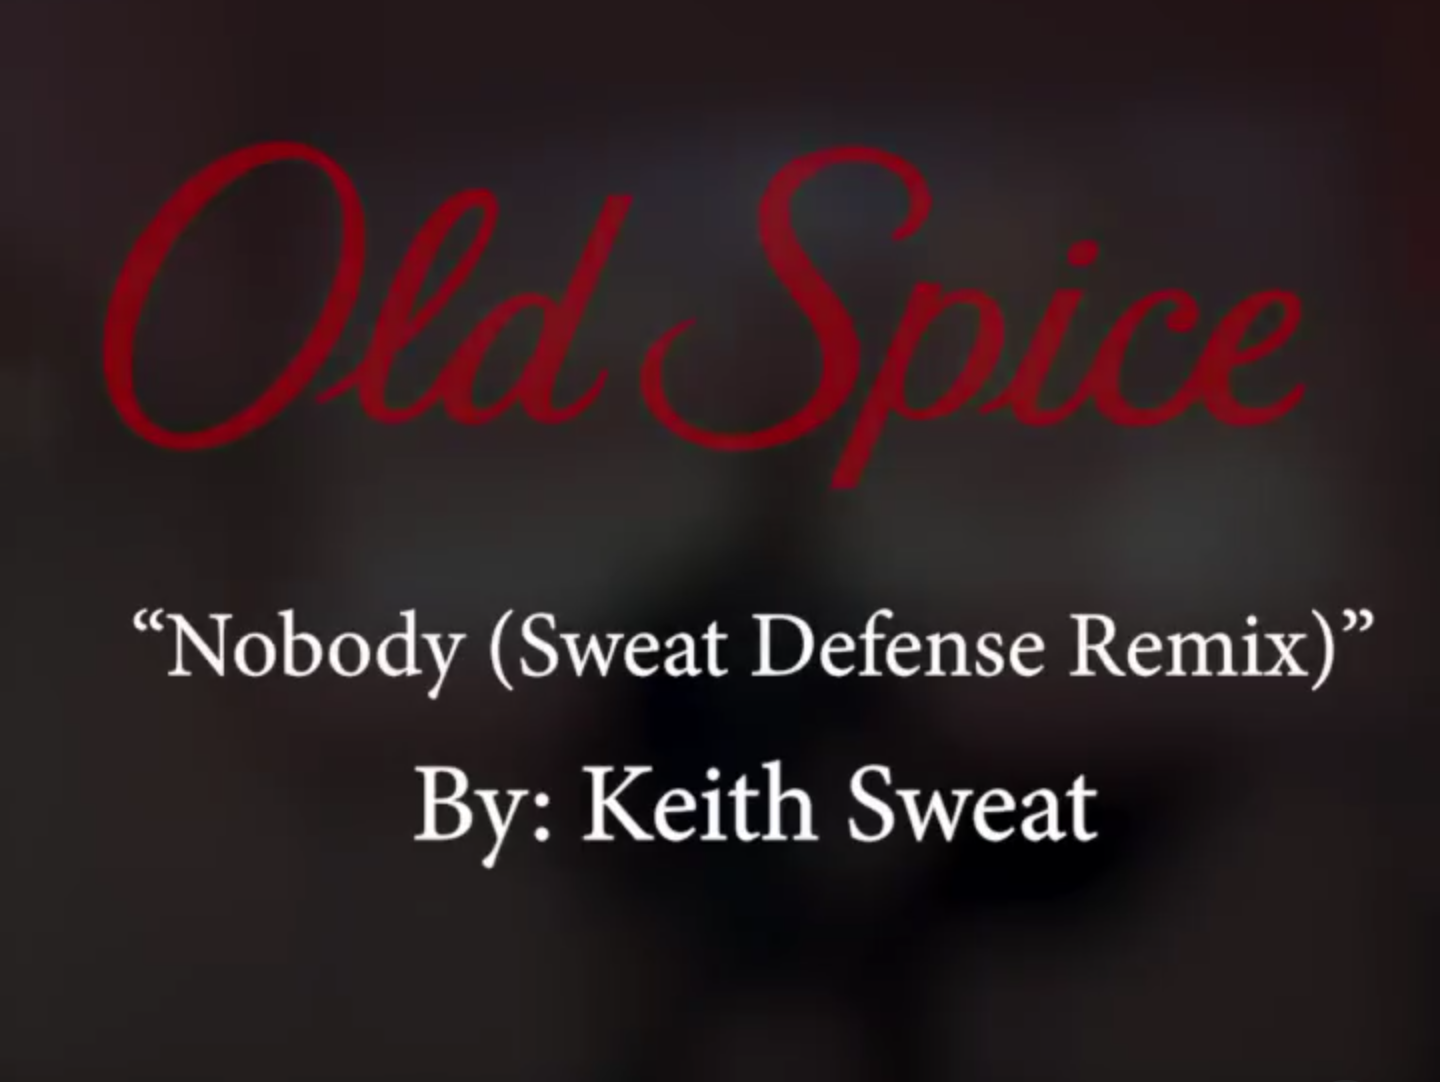 """Keith Sweat Creates Hilarious """"Sweat Defense"""" Remix to his hit """"Nobody"""" for Old Spice"""